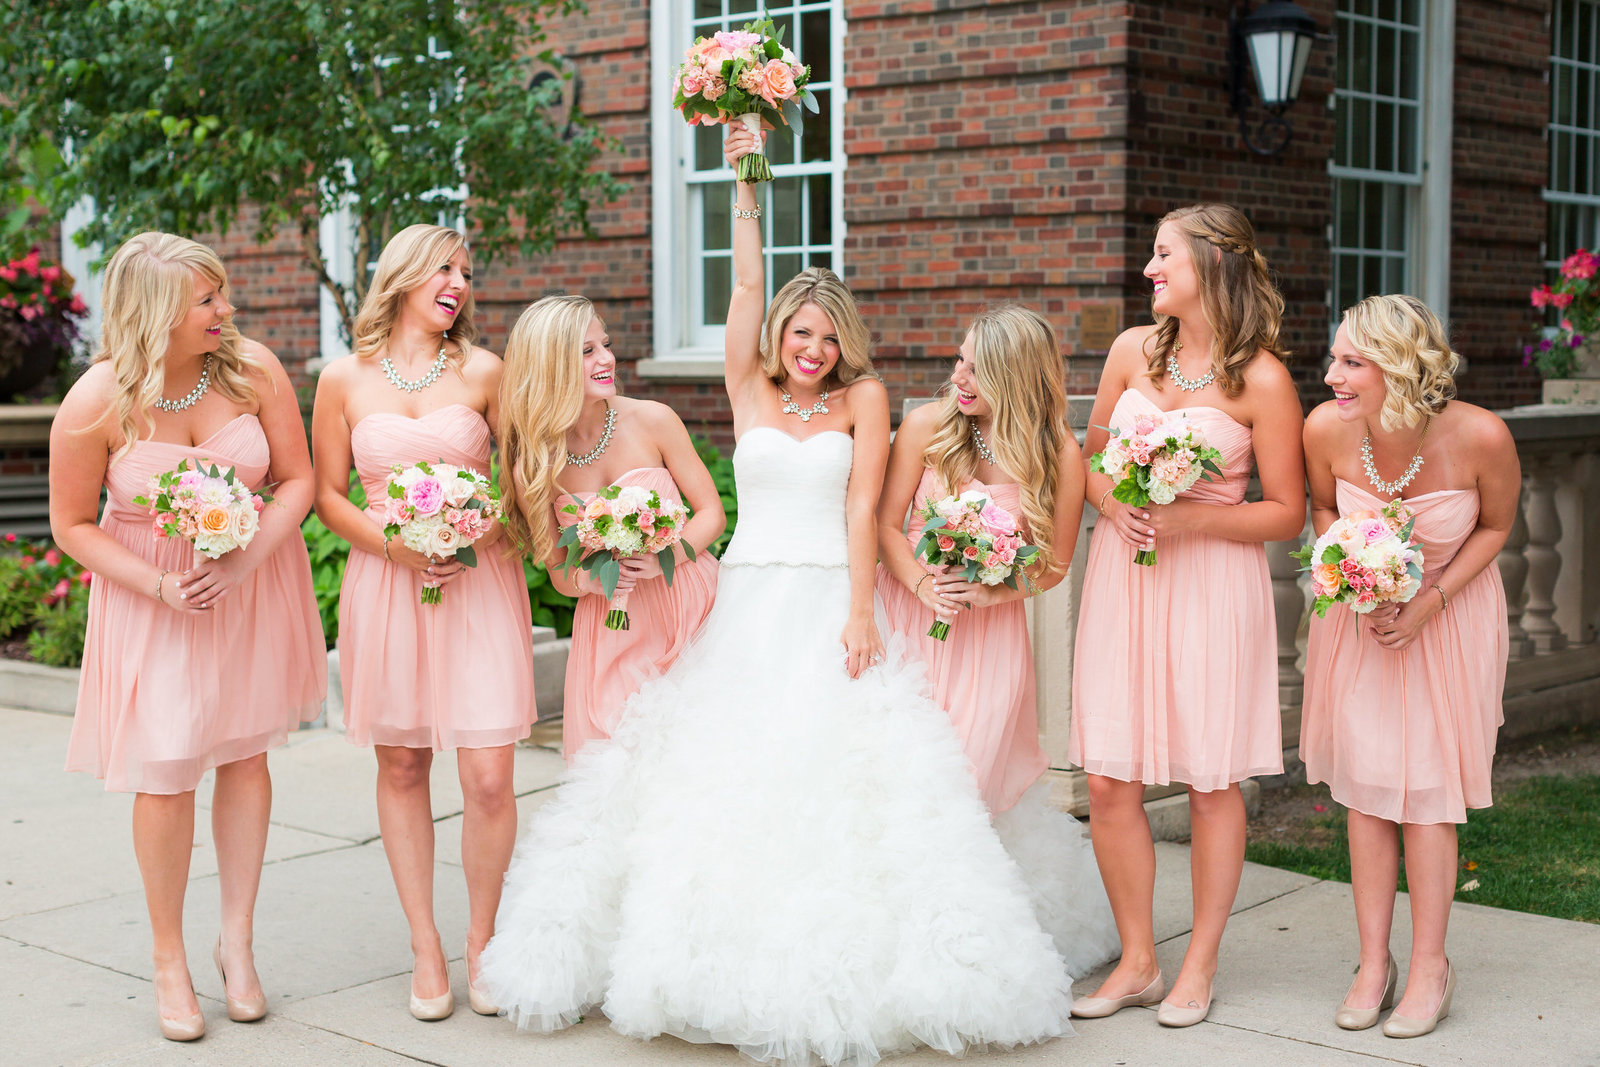 Maison Meredith Photography Wisconsin Wedding Photographer 058